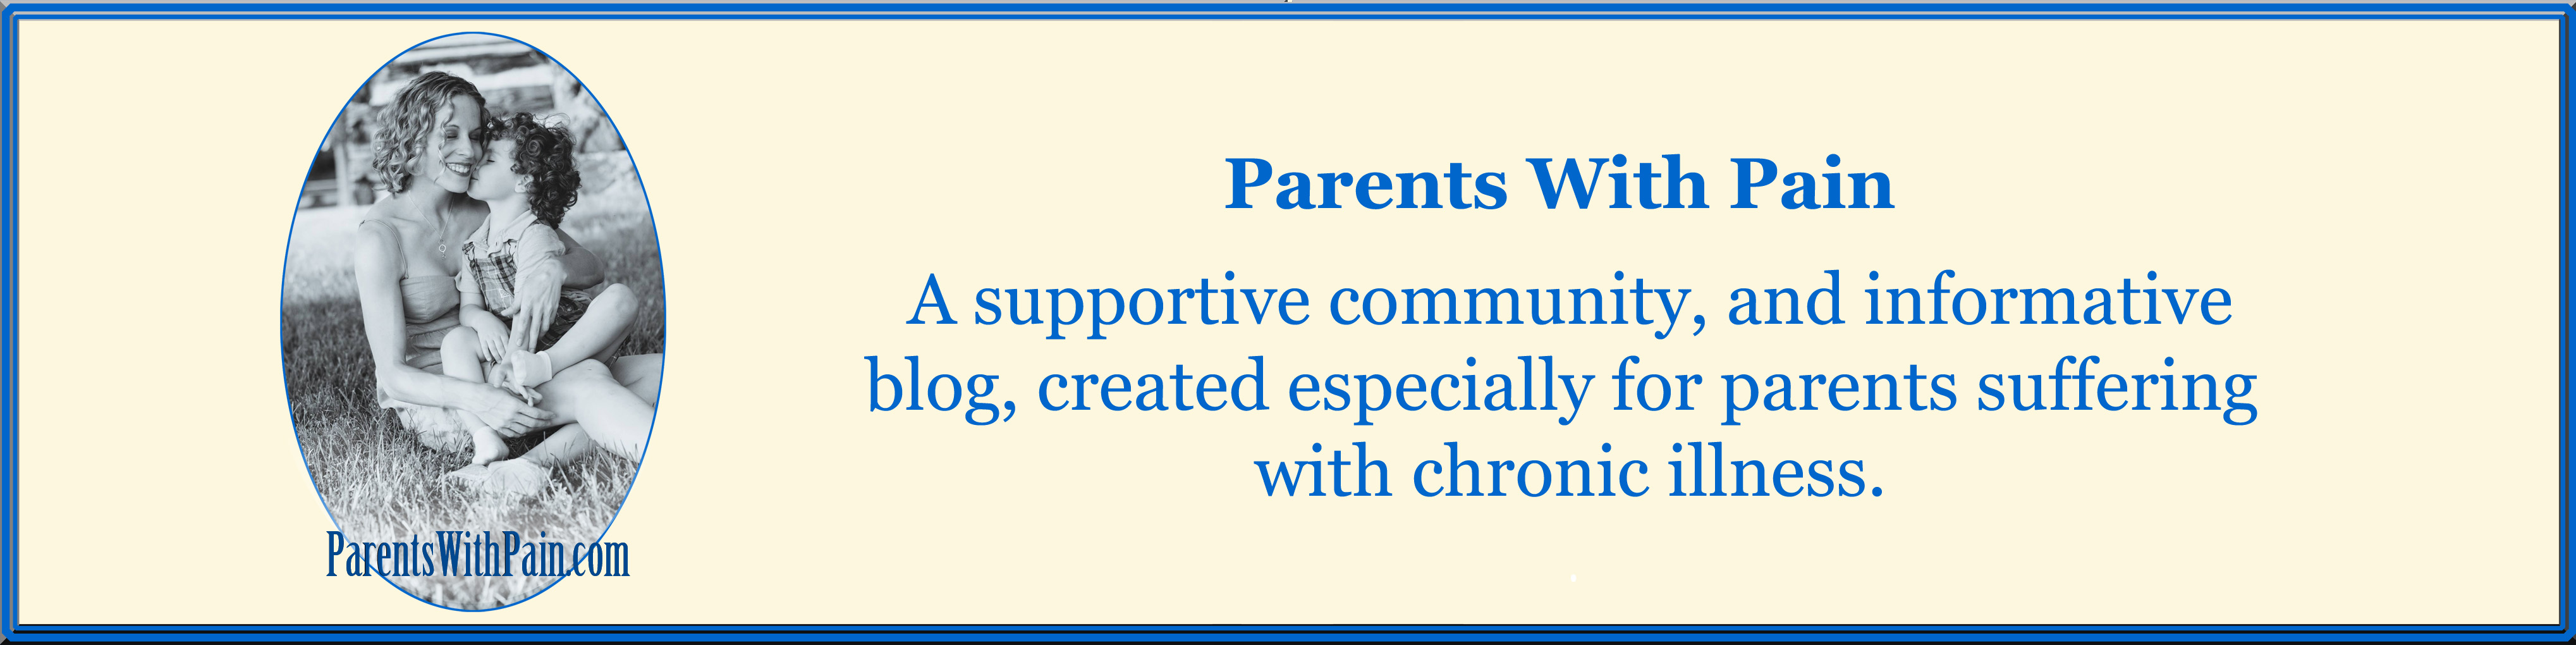 Parents with Pain Community - Chronic Pain, Fibromyalgia Support